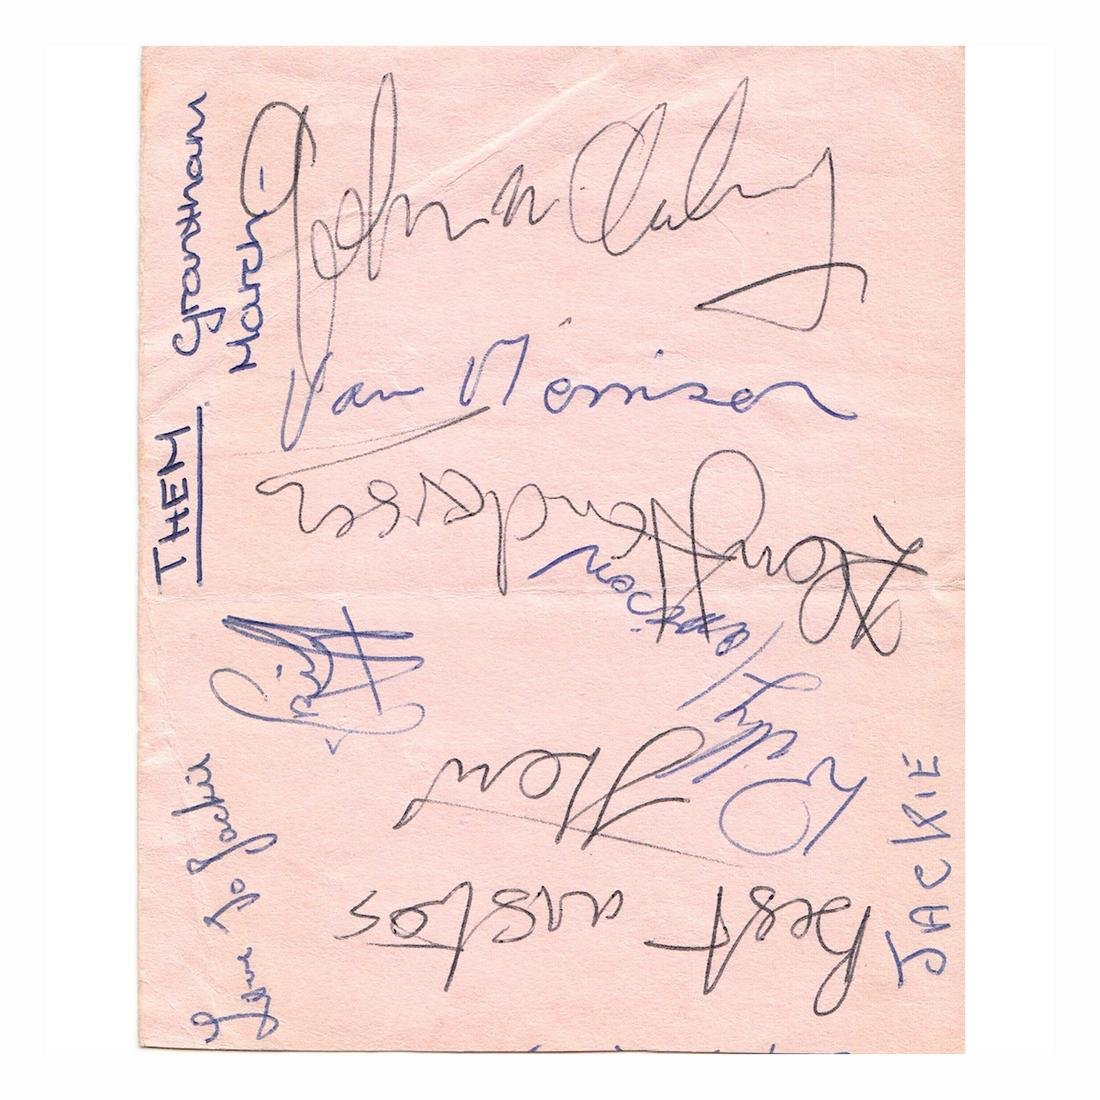 Van Morrison and his band Them - Autograph